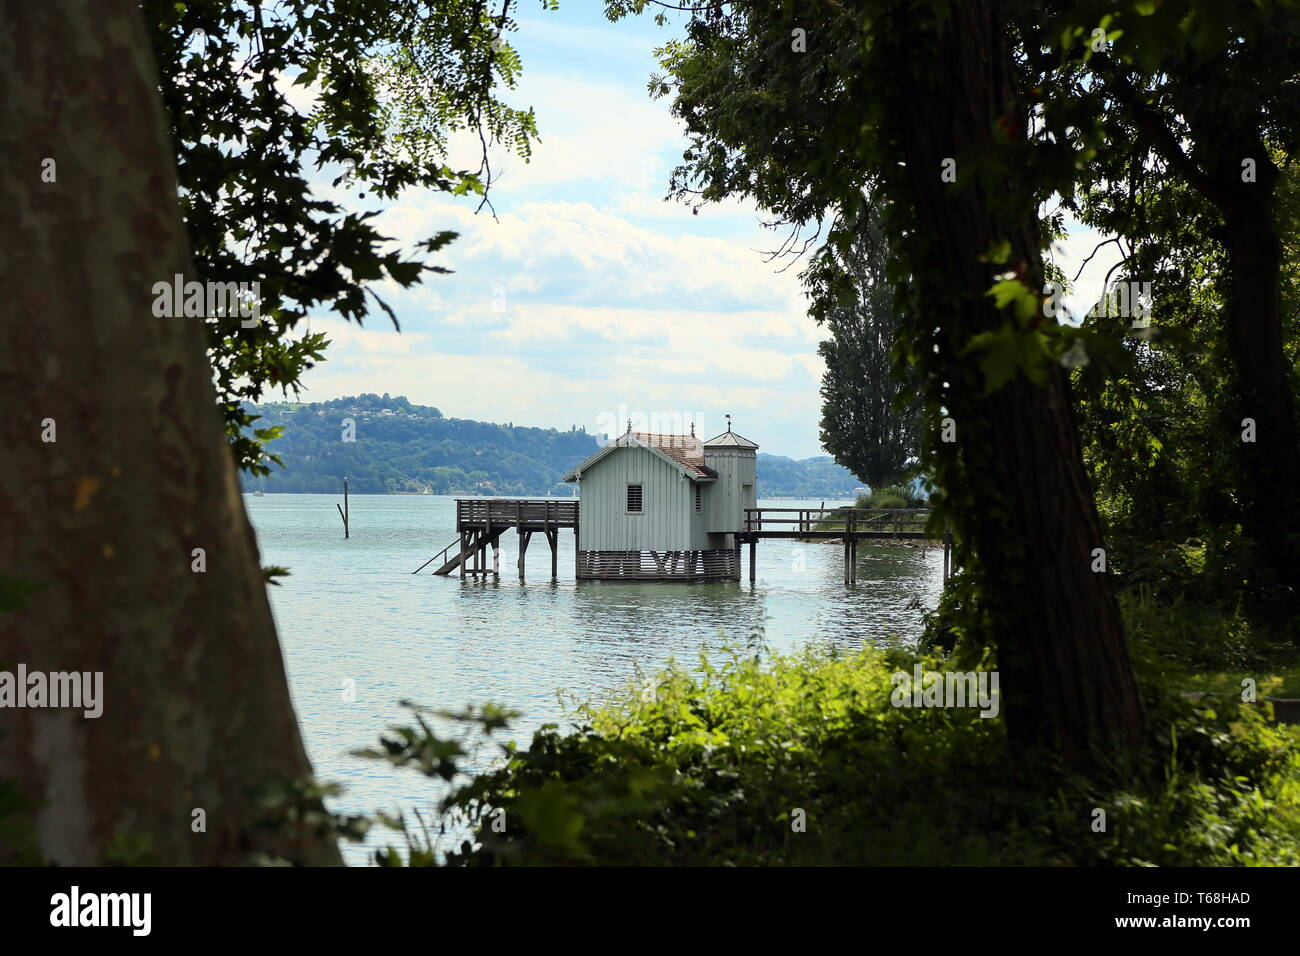 Lake Constance, Alpine foreland, South Germany - Stock Image